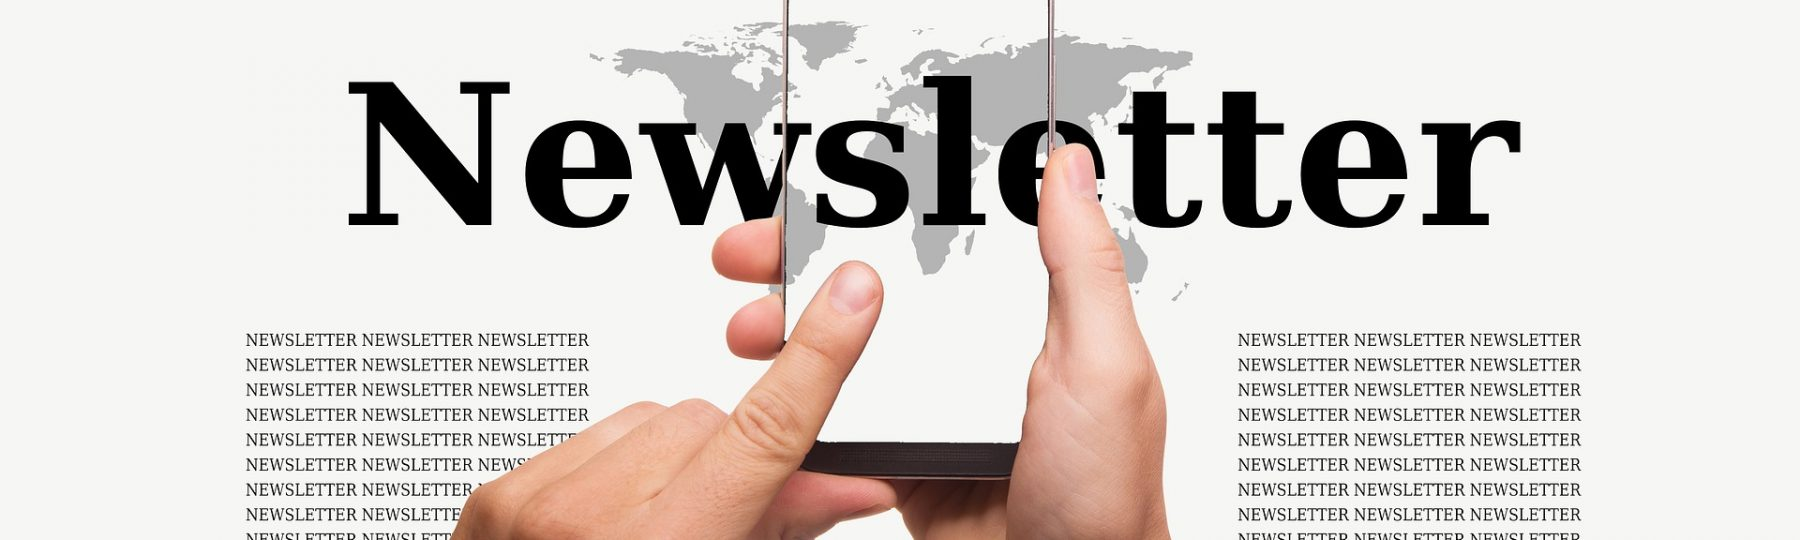 CHECK OUT THE WRITER'S JOB NEWSLETTER FOR PAID WRITING GIGS AND MORE